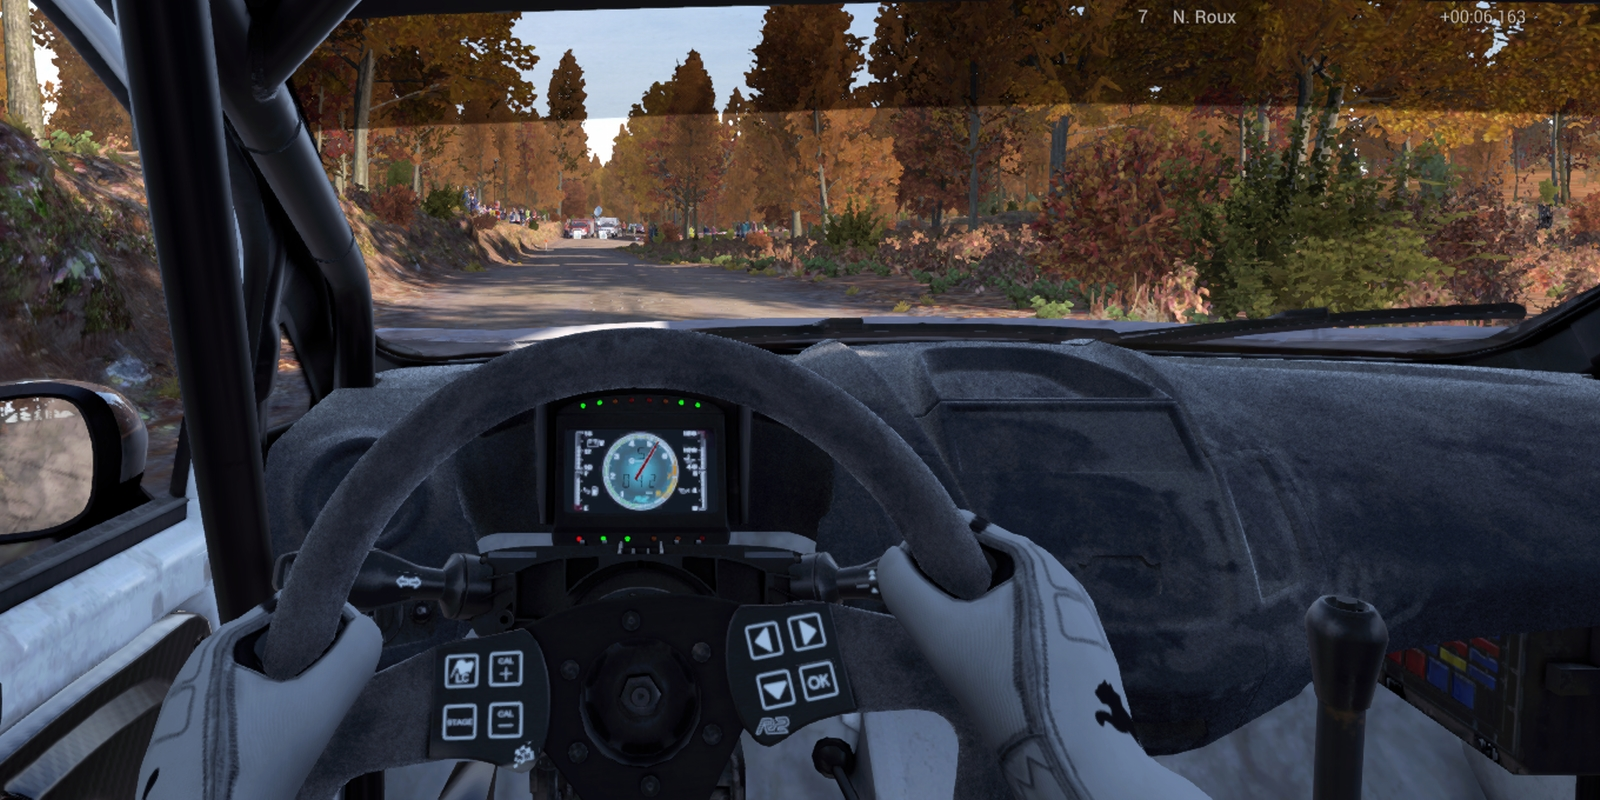 DiRT 4 Lanches On PC, PS4 And Xbox One